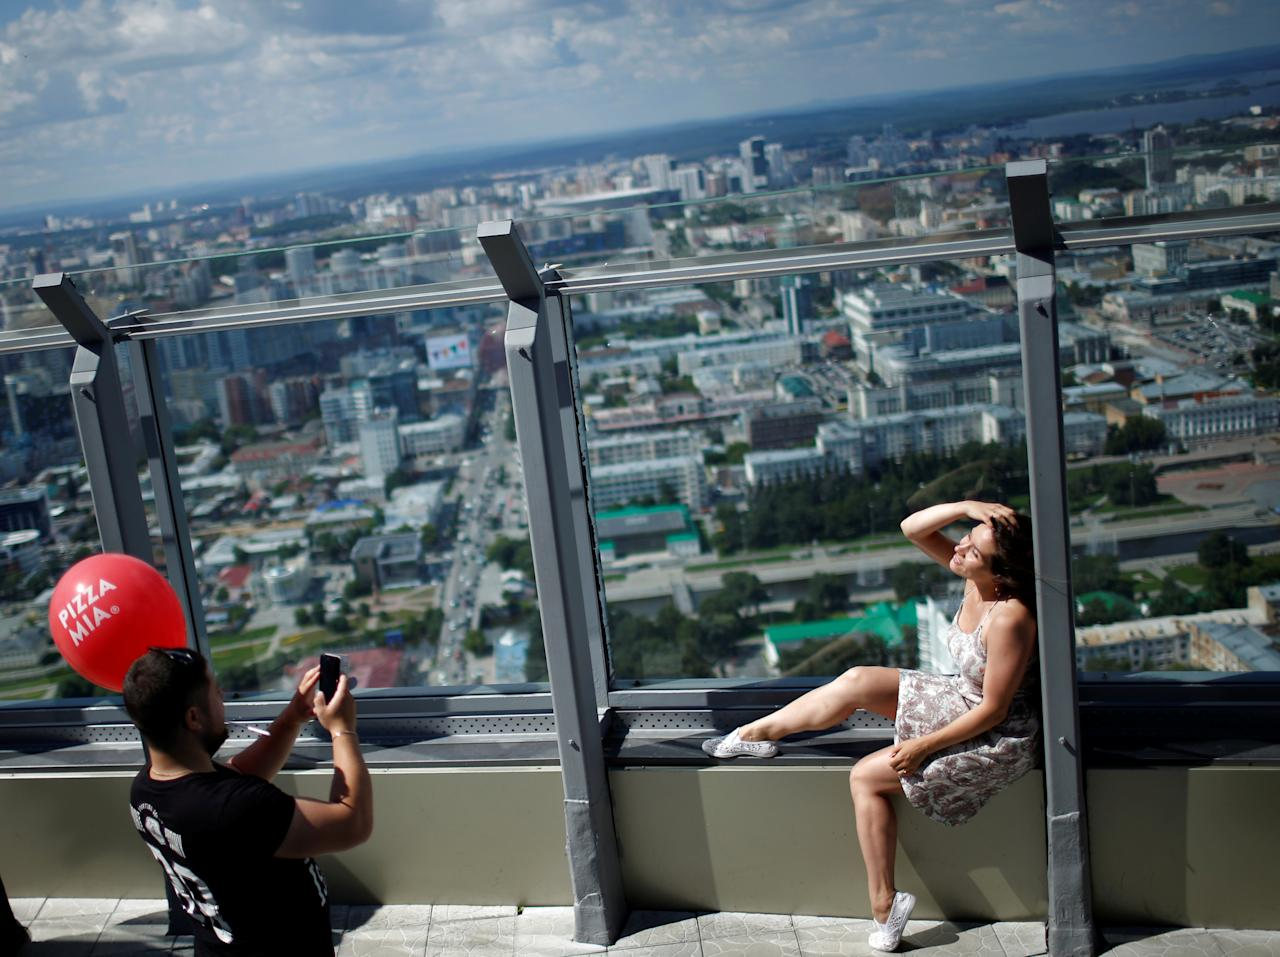 A woman poses for a picture at viewing point on the Vysotsky skyscraper in Yekaterinburg, Russia, July 28, 2017. REUTERS/David Mdzinarishvili